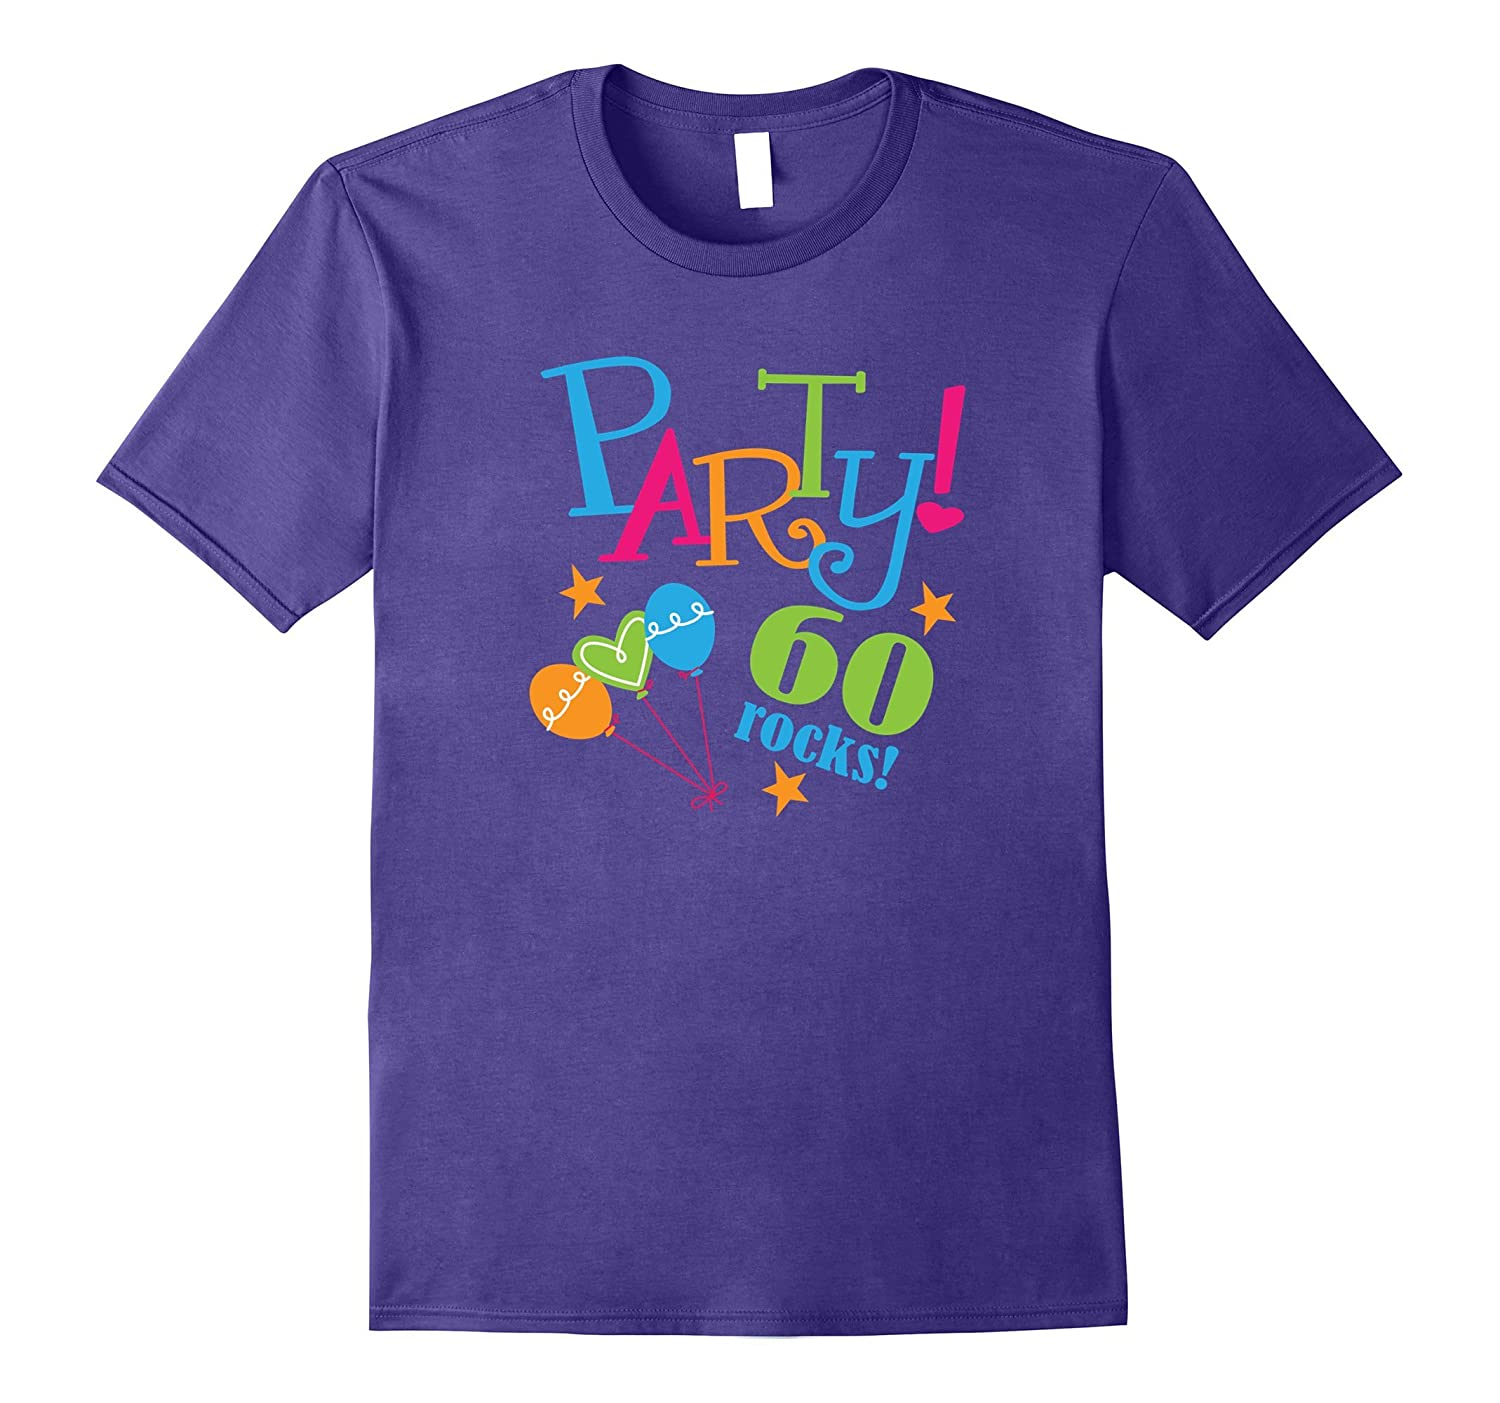 60th Birthday Shirt Funny 60 Rocks Party Photo Tee-PL